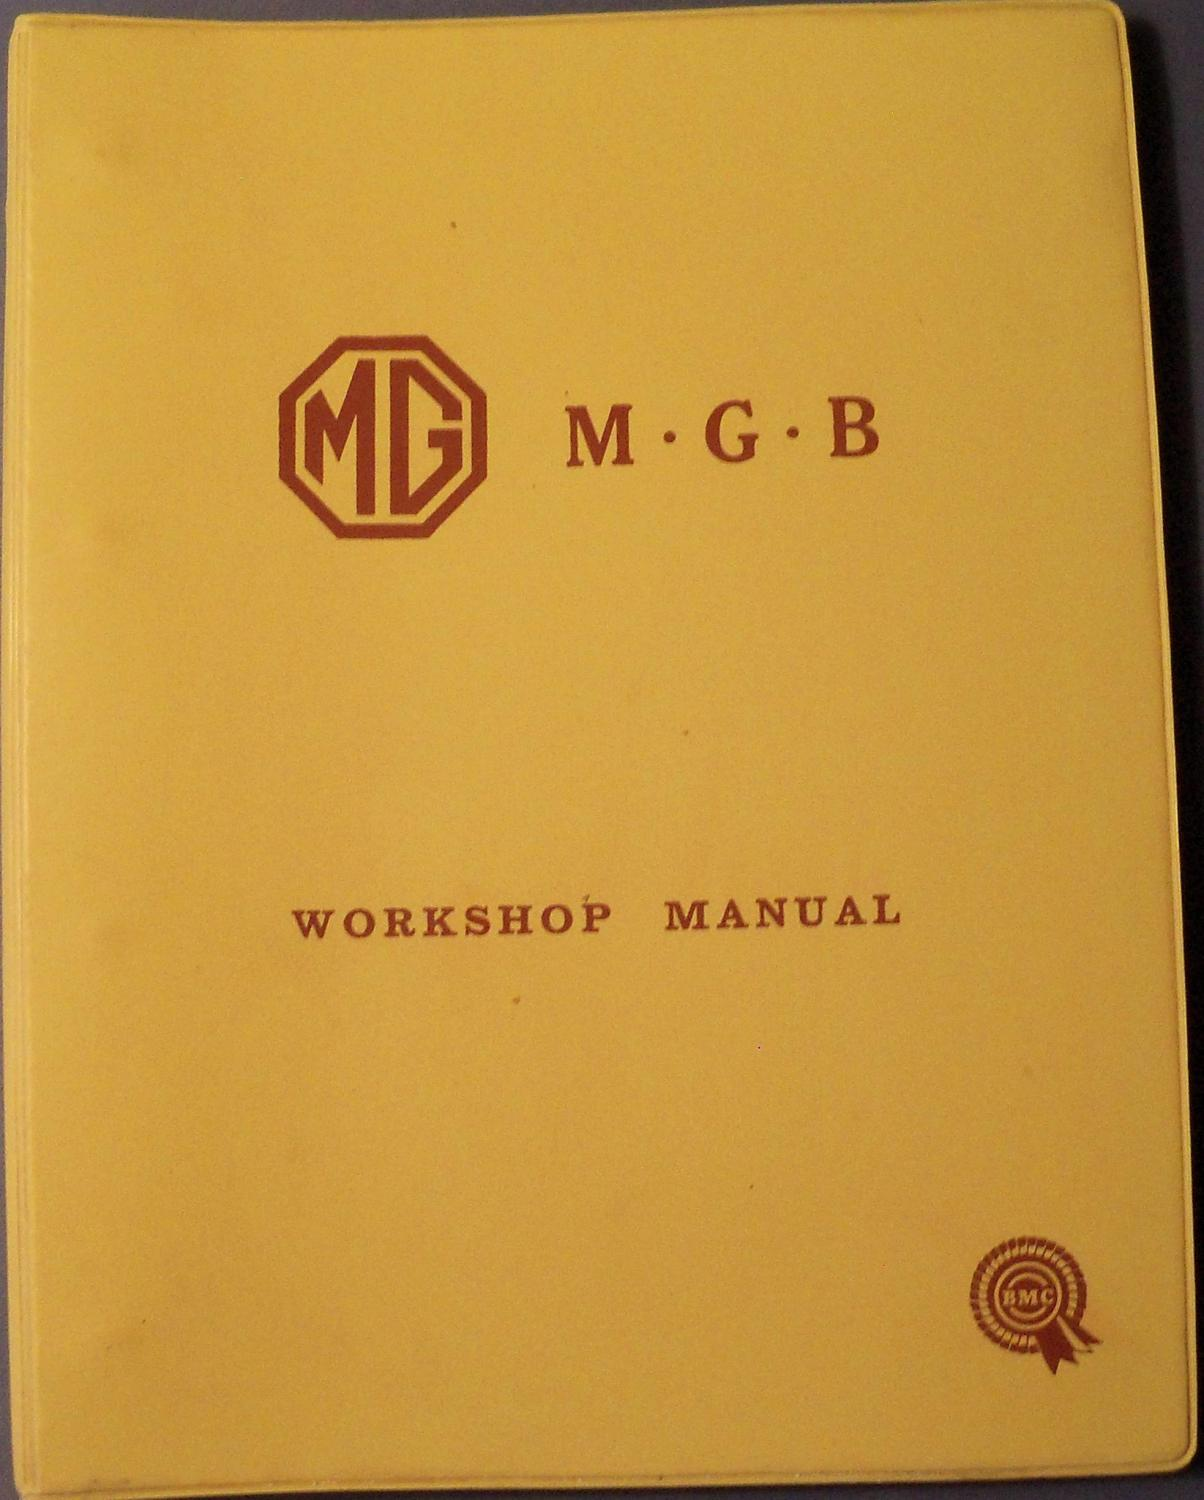 the mg mgb workshop manual part akd 3259c b m c service limited rh abebooks com I&T Shop Manuals Tractor Shop Manuals